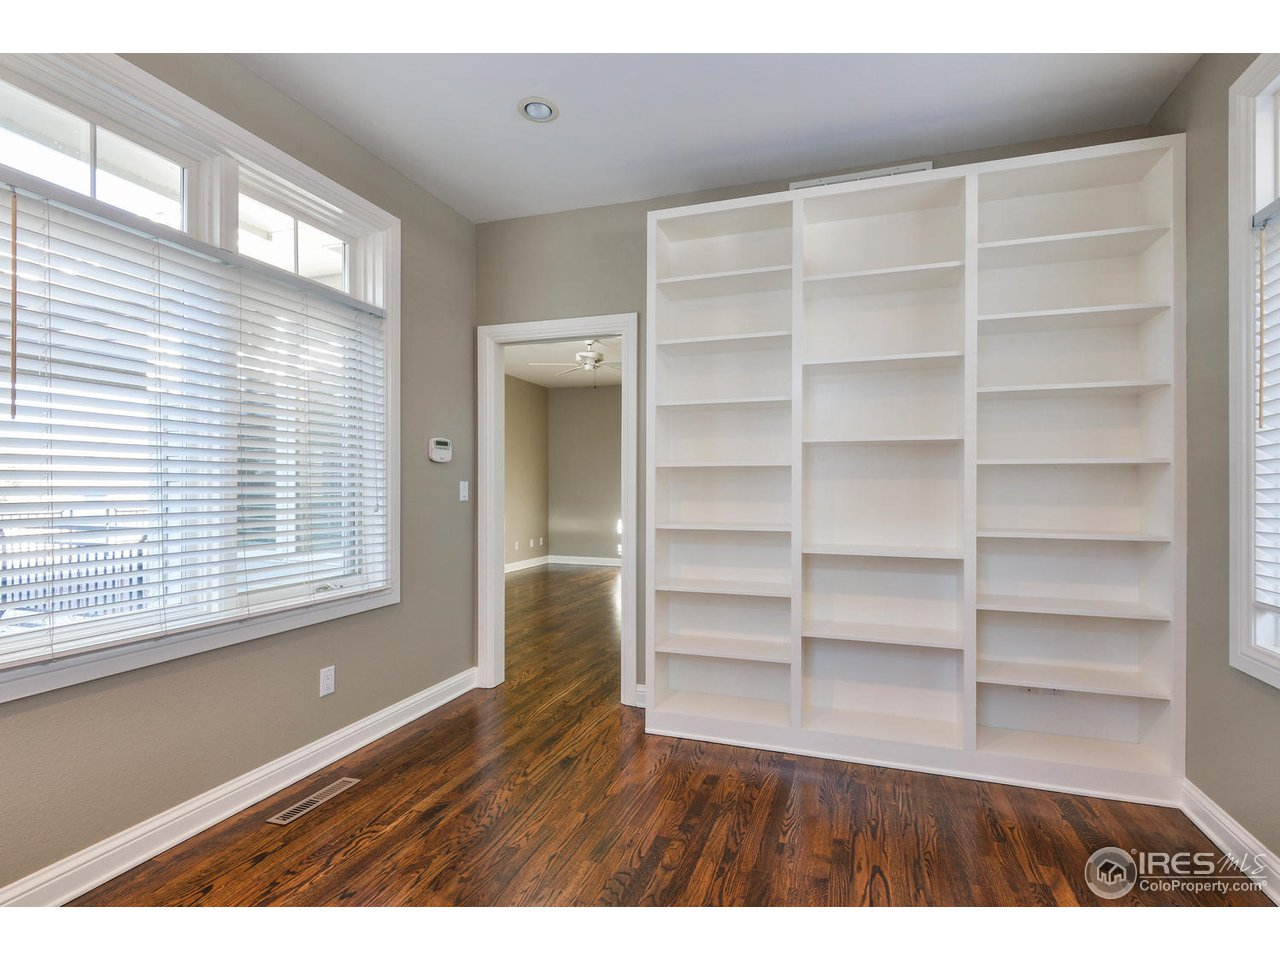 Built in Book Shelves in Private Sitting Room